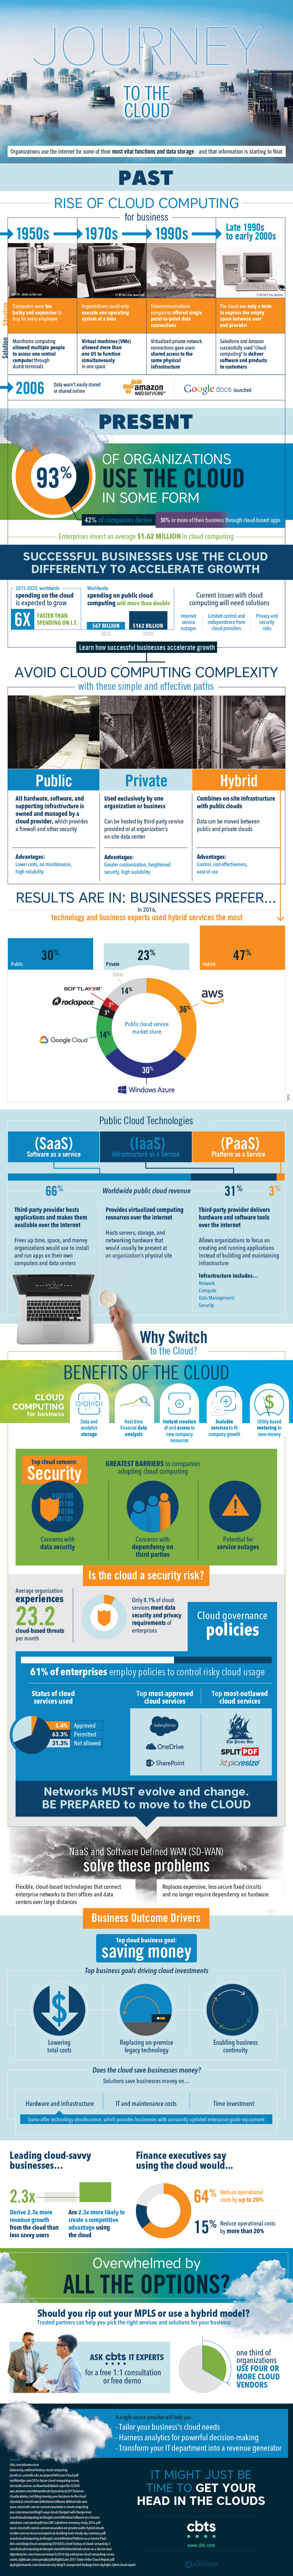 CBTS - Journey to the Cloud Infographic